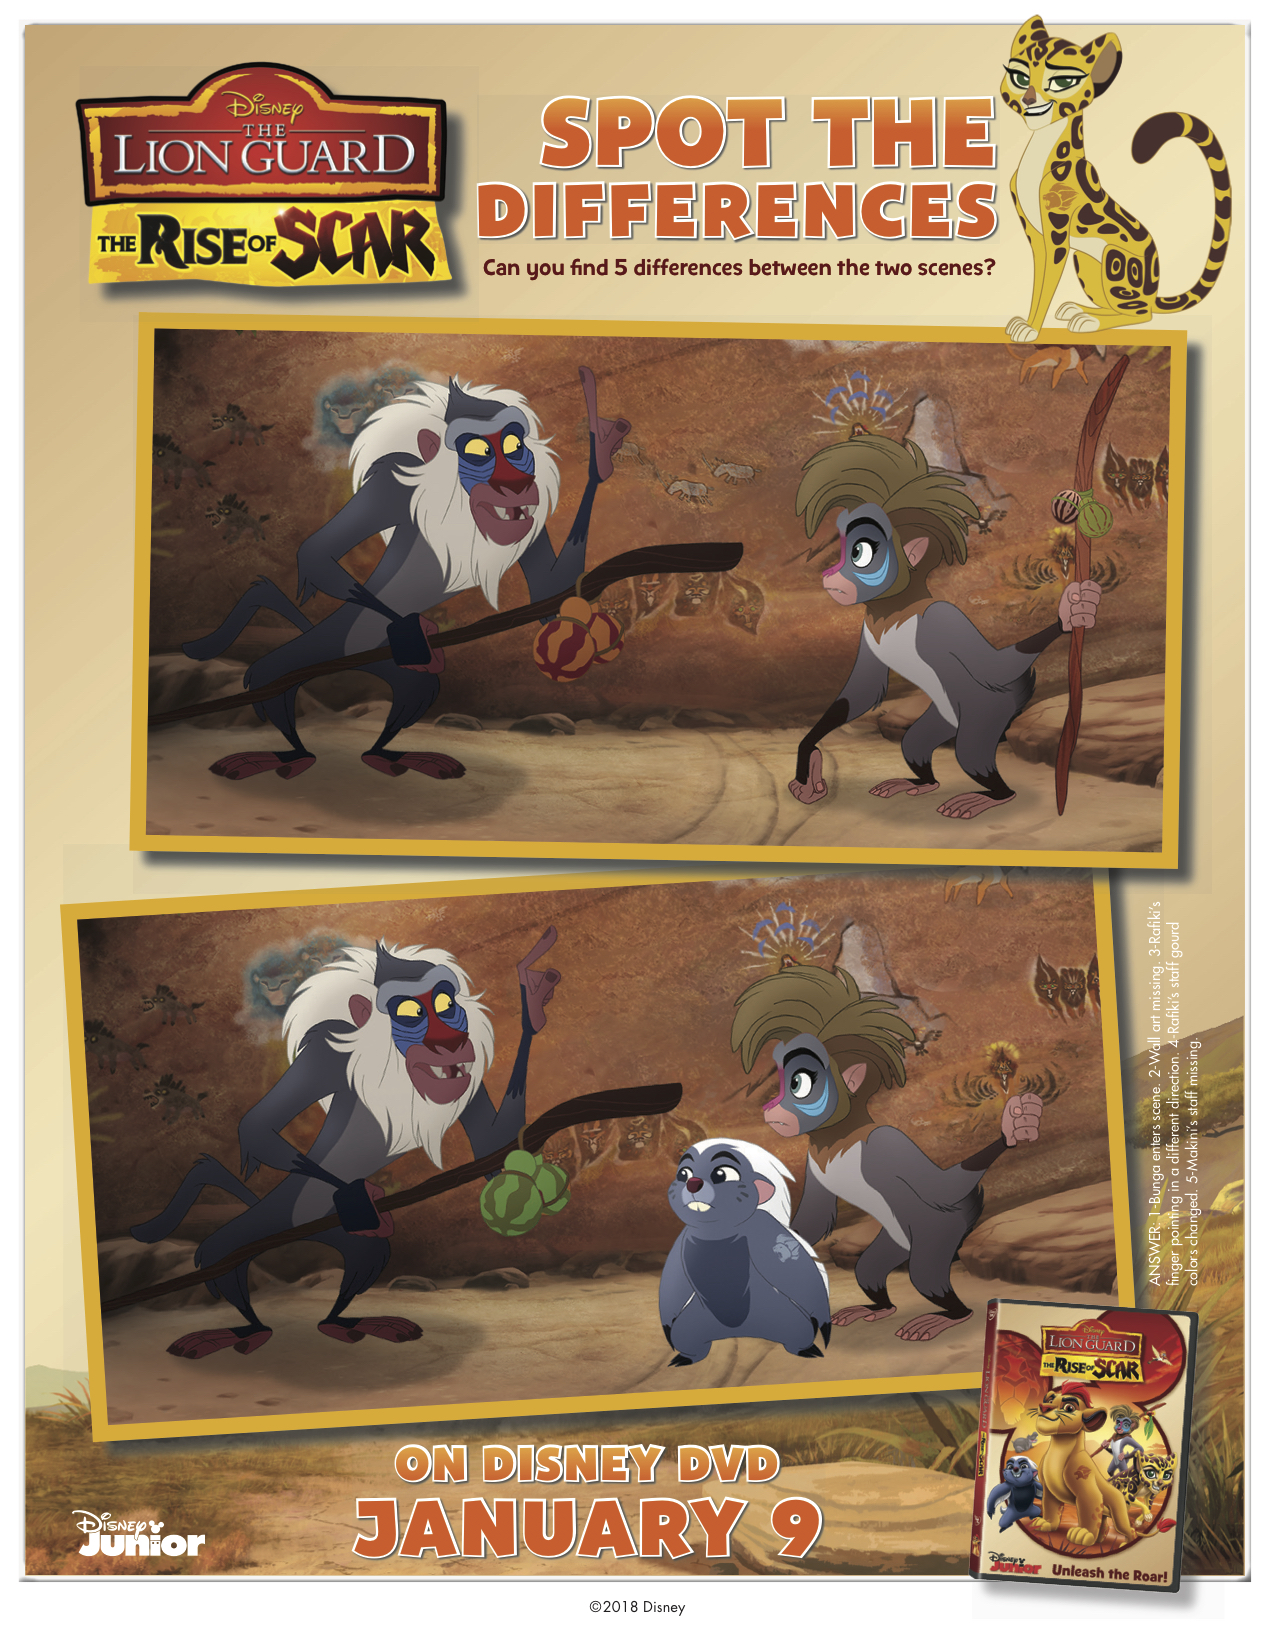 Disney The Lion Guard- The Rise of Scar Spot the Differences